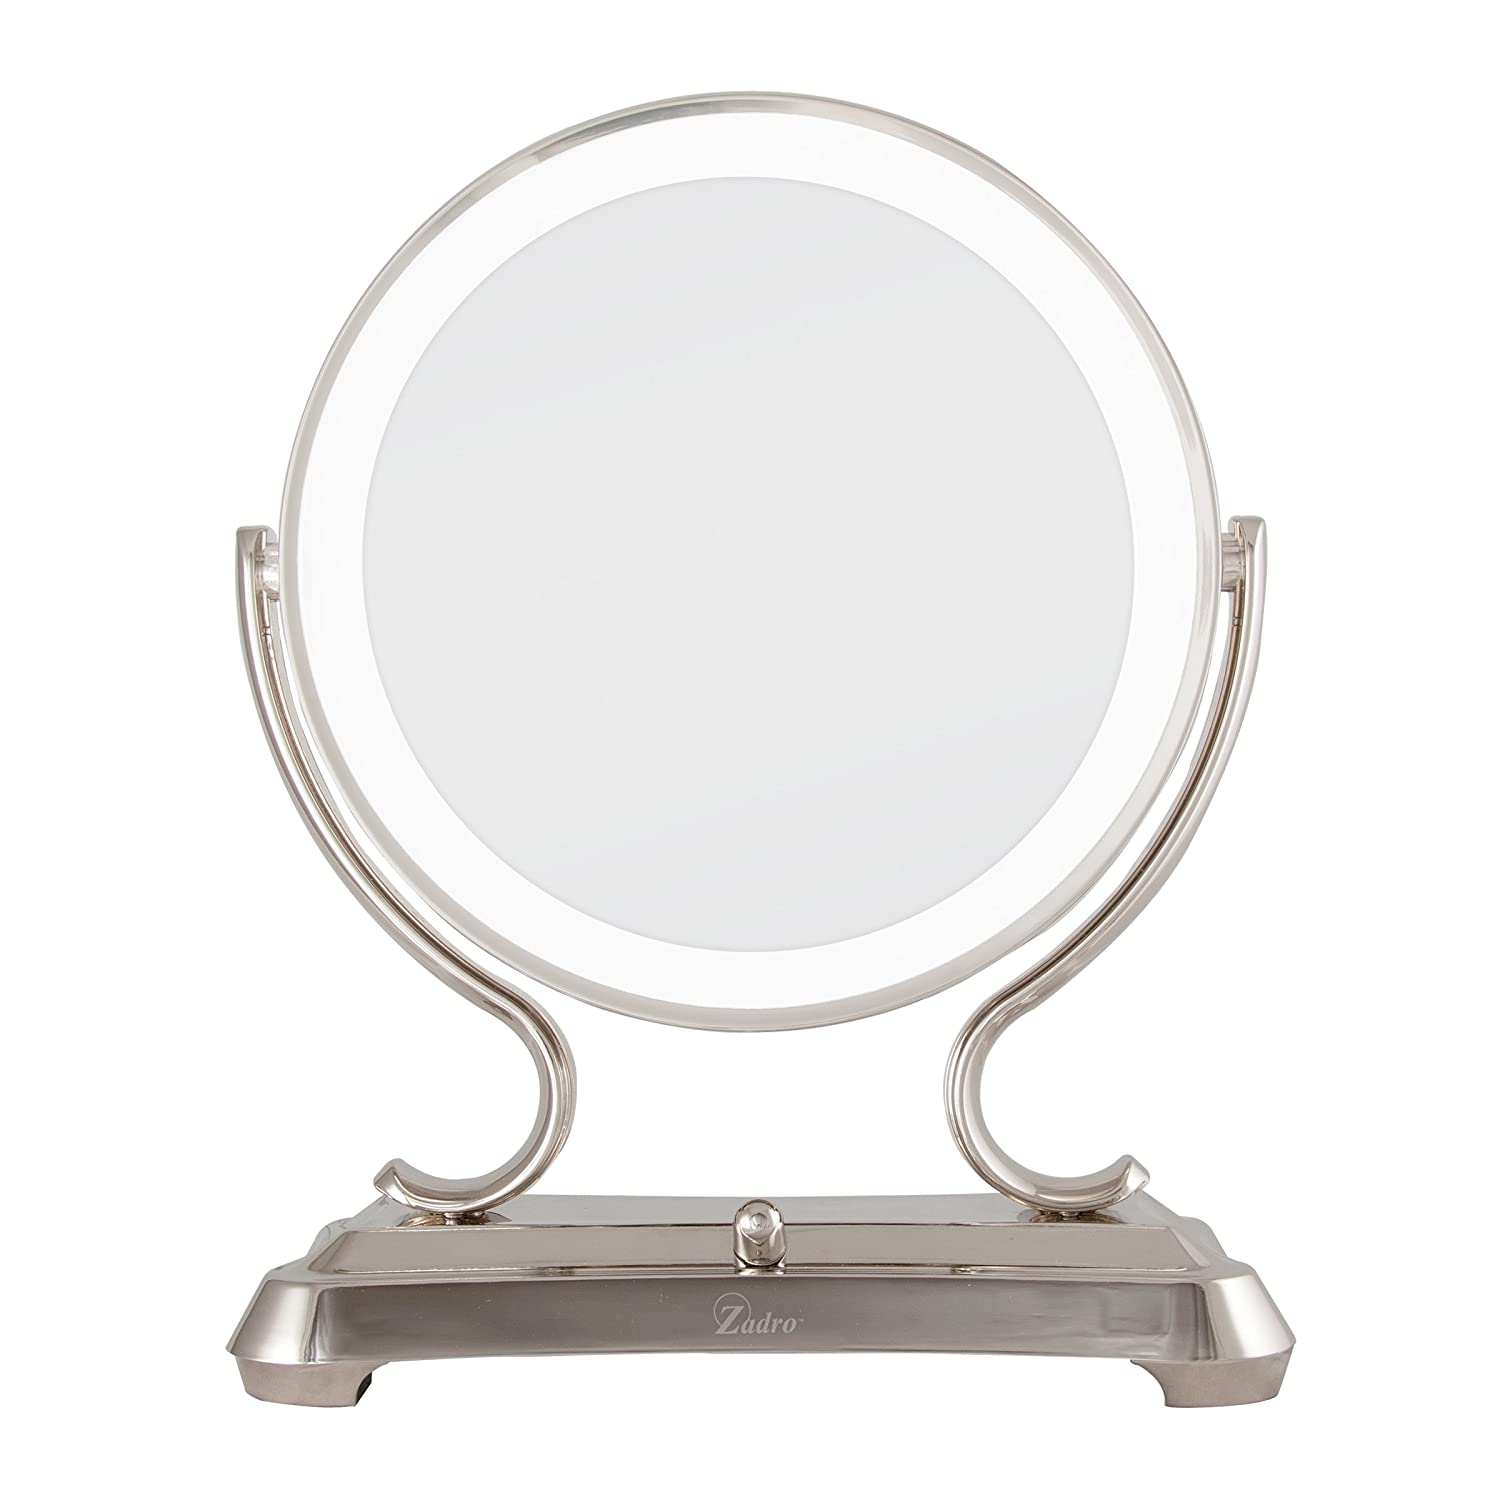 Zadro Polished Nickel Surround Light Dual Sided Glamour Vanity Mirror, 5 X / 1 X Magnification by Zadro